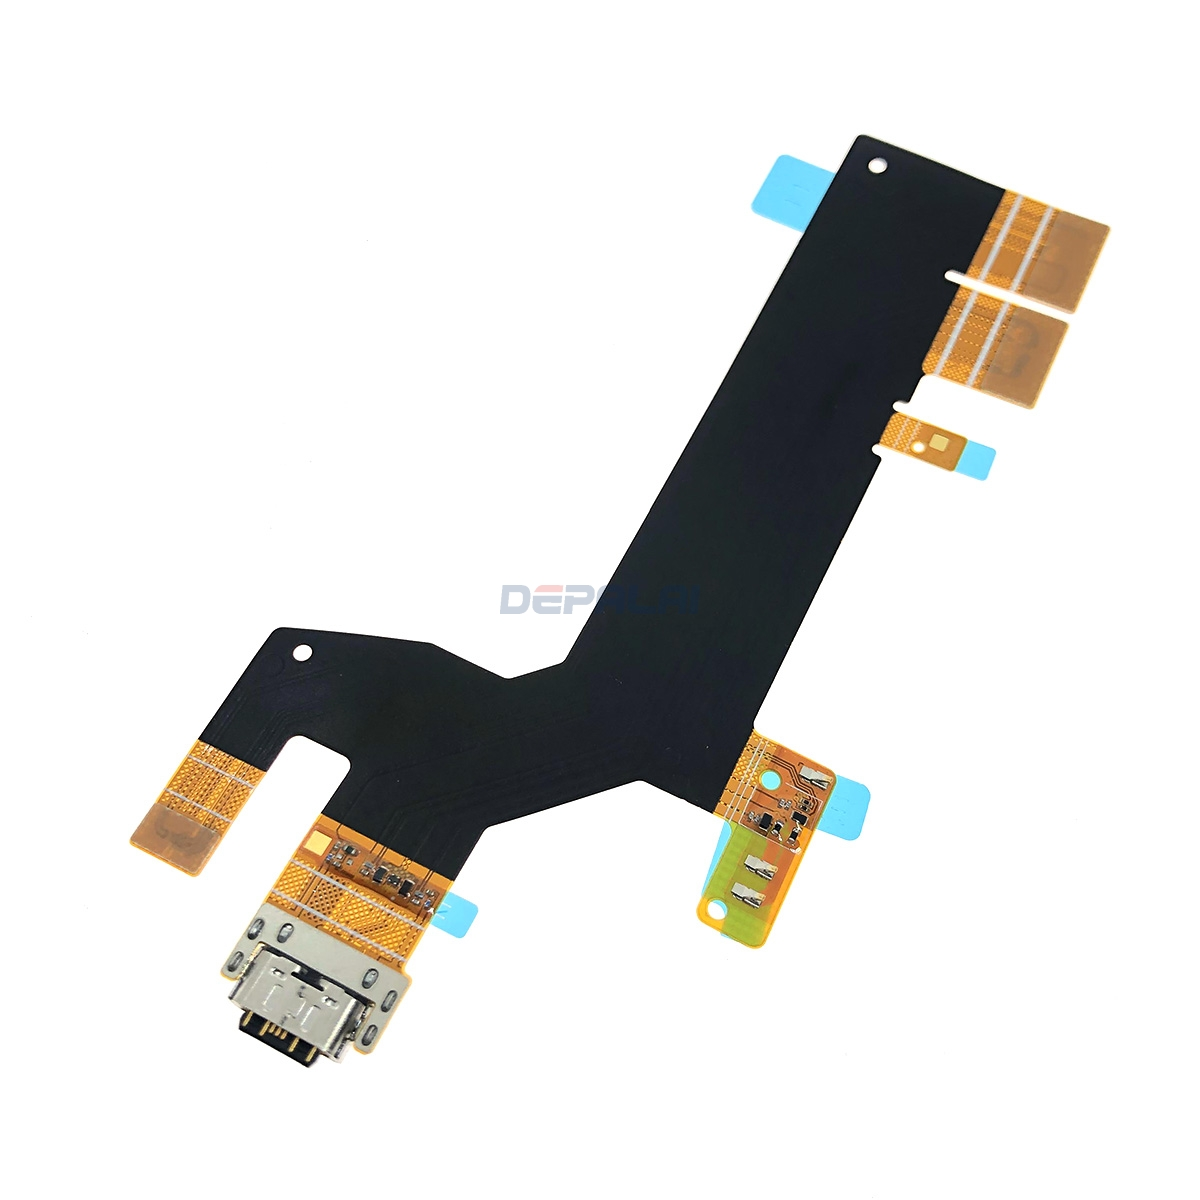 USB Port Charger Dock Plug Connector Flex Cable For Sony Xperia 10 Plus Dual I3213 X10plus Charging Port Board+Microphone Module